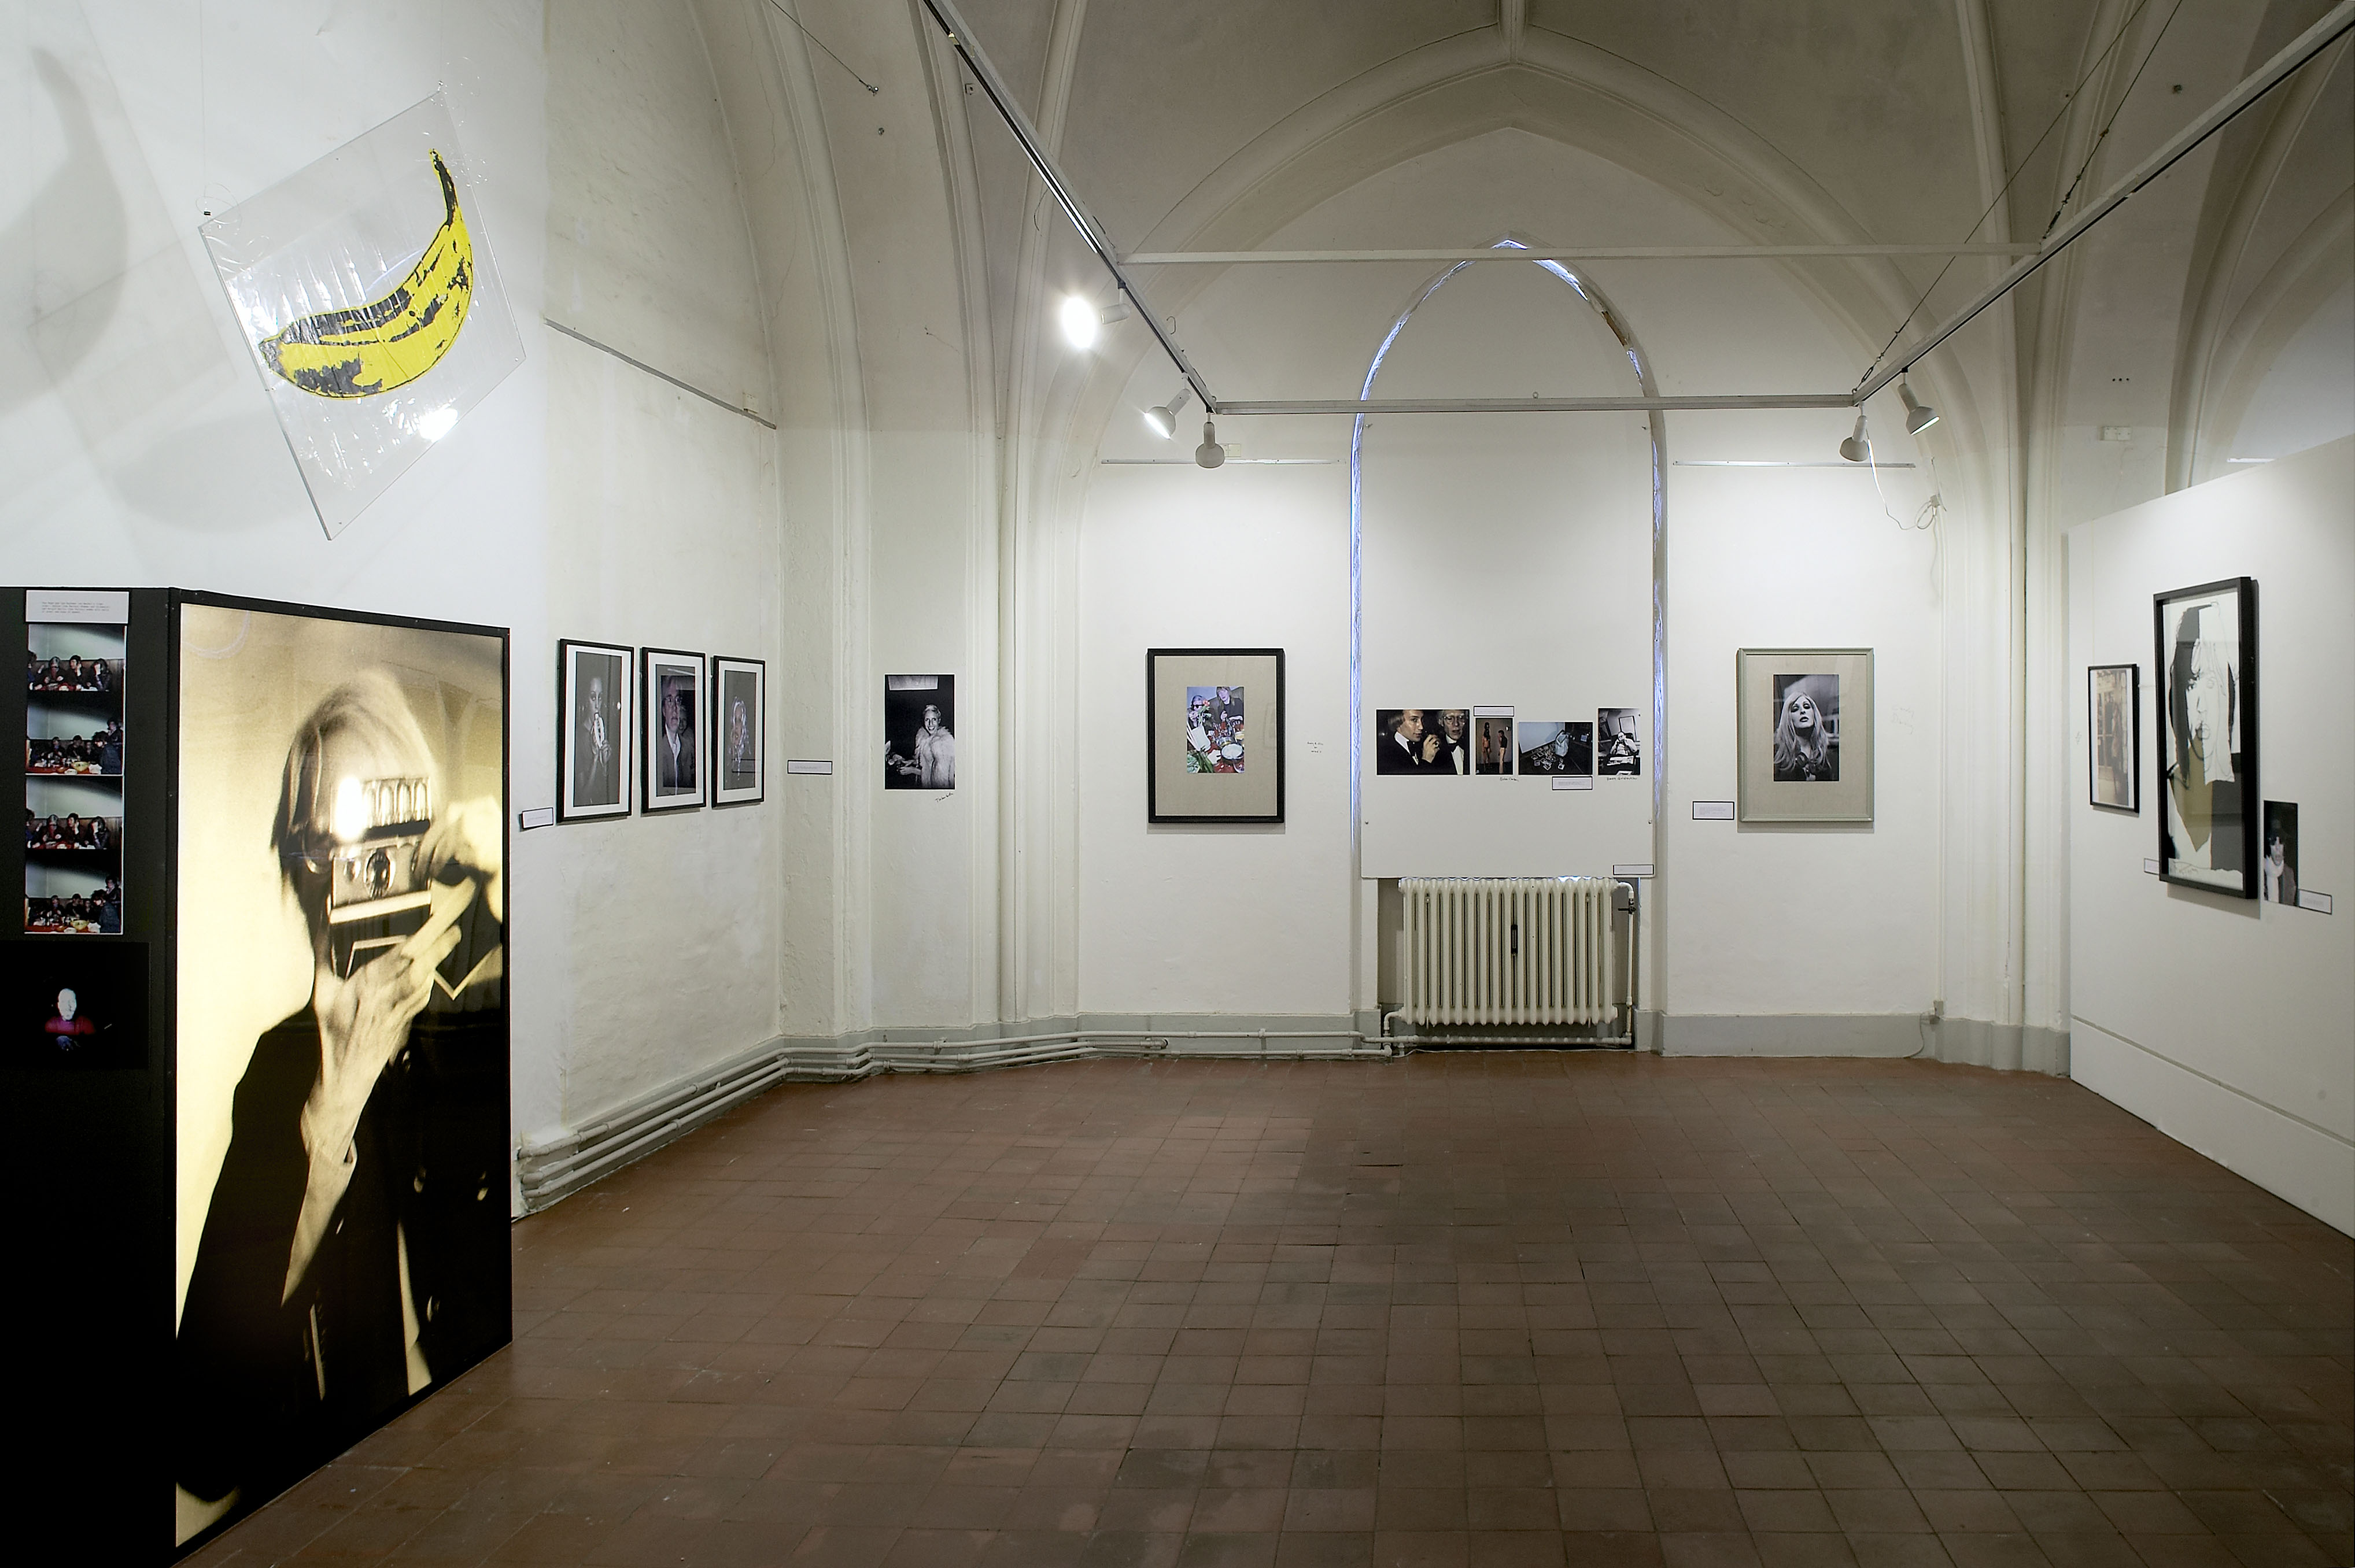 warhol, banana, the new cross, max's kansas city copenhagen, jacob fuglsang mikkelsen